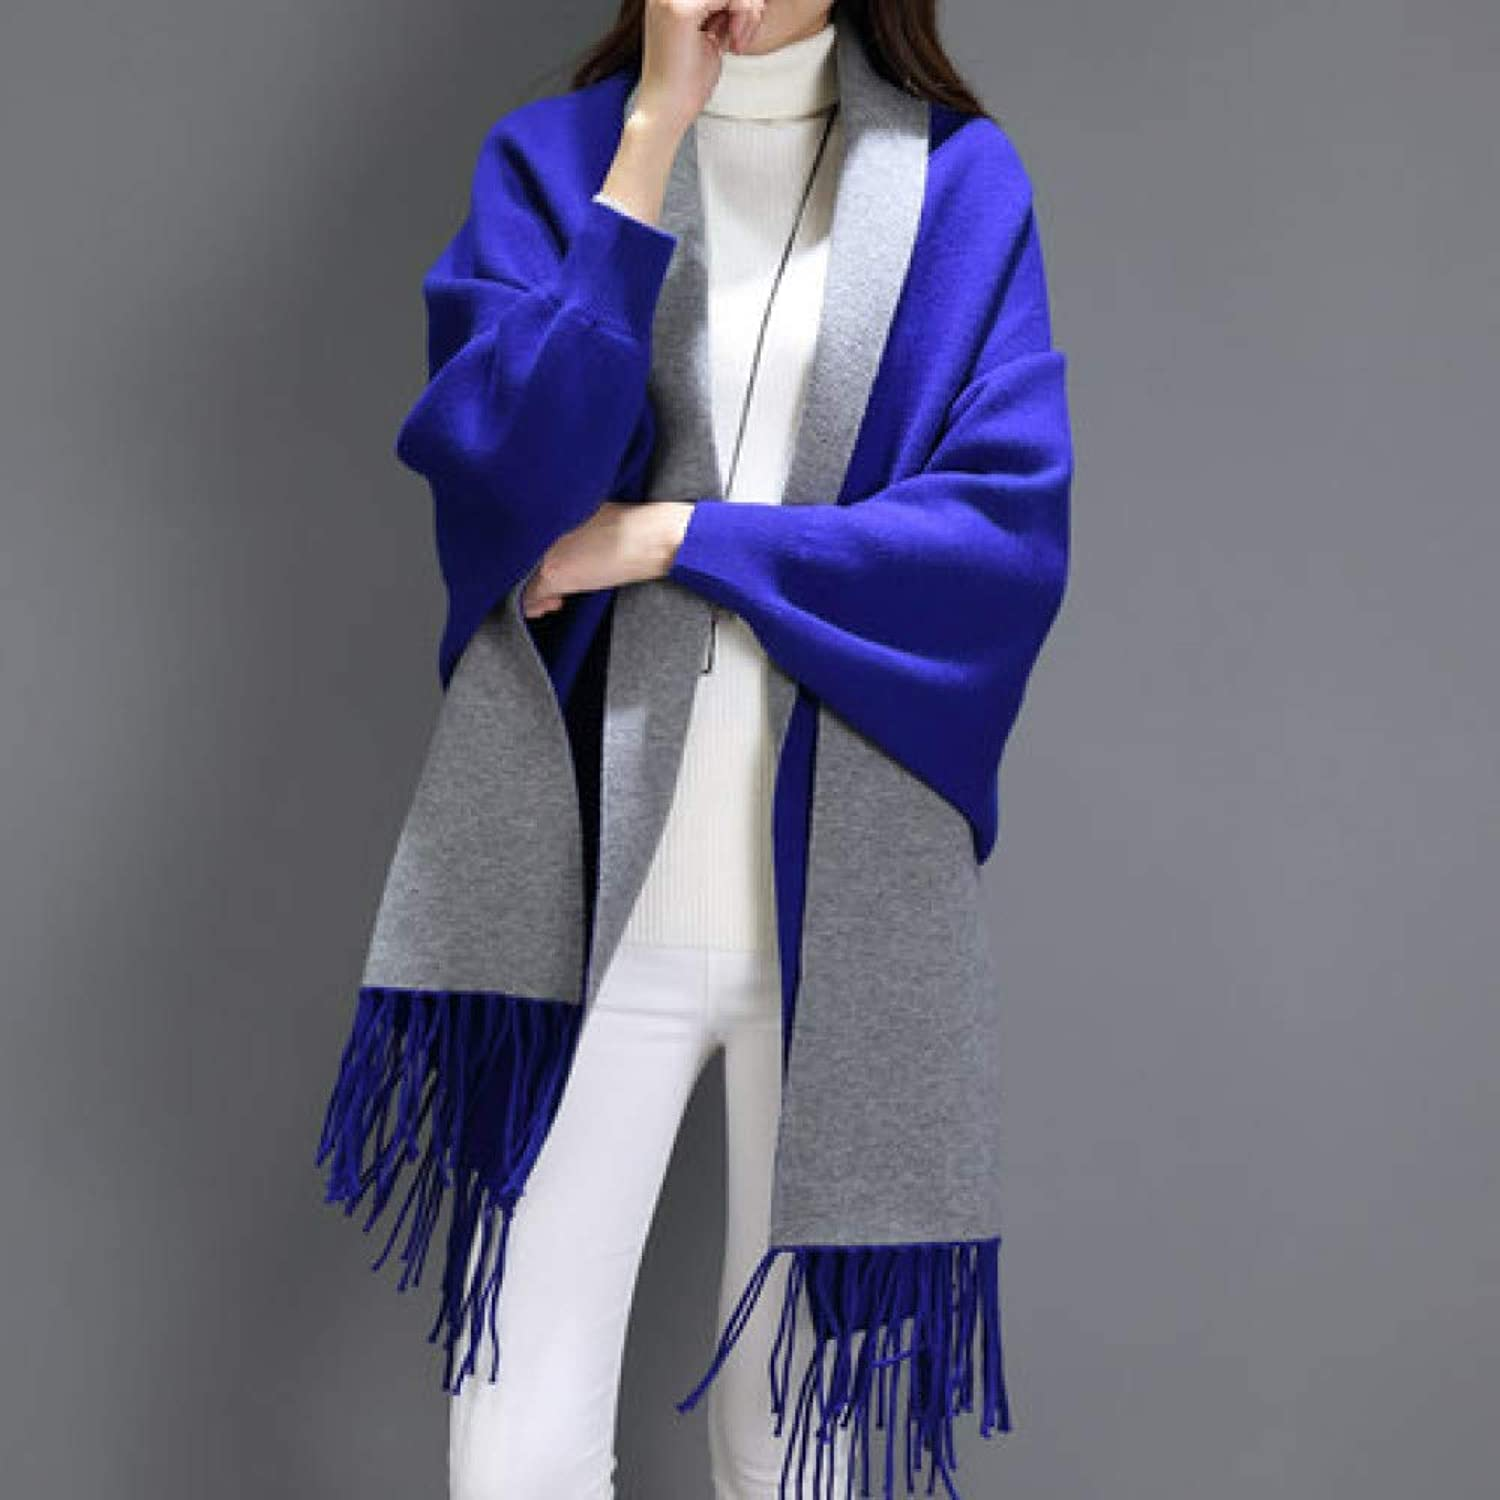 Cloak Cloak with Sleeves, Cashmere Fashion, Shawl, Scarf Dualuse, Thick Autumn and Winter Ladies DoubleSided Solid color Jacket SLR